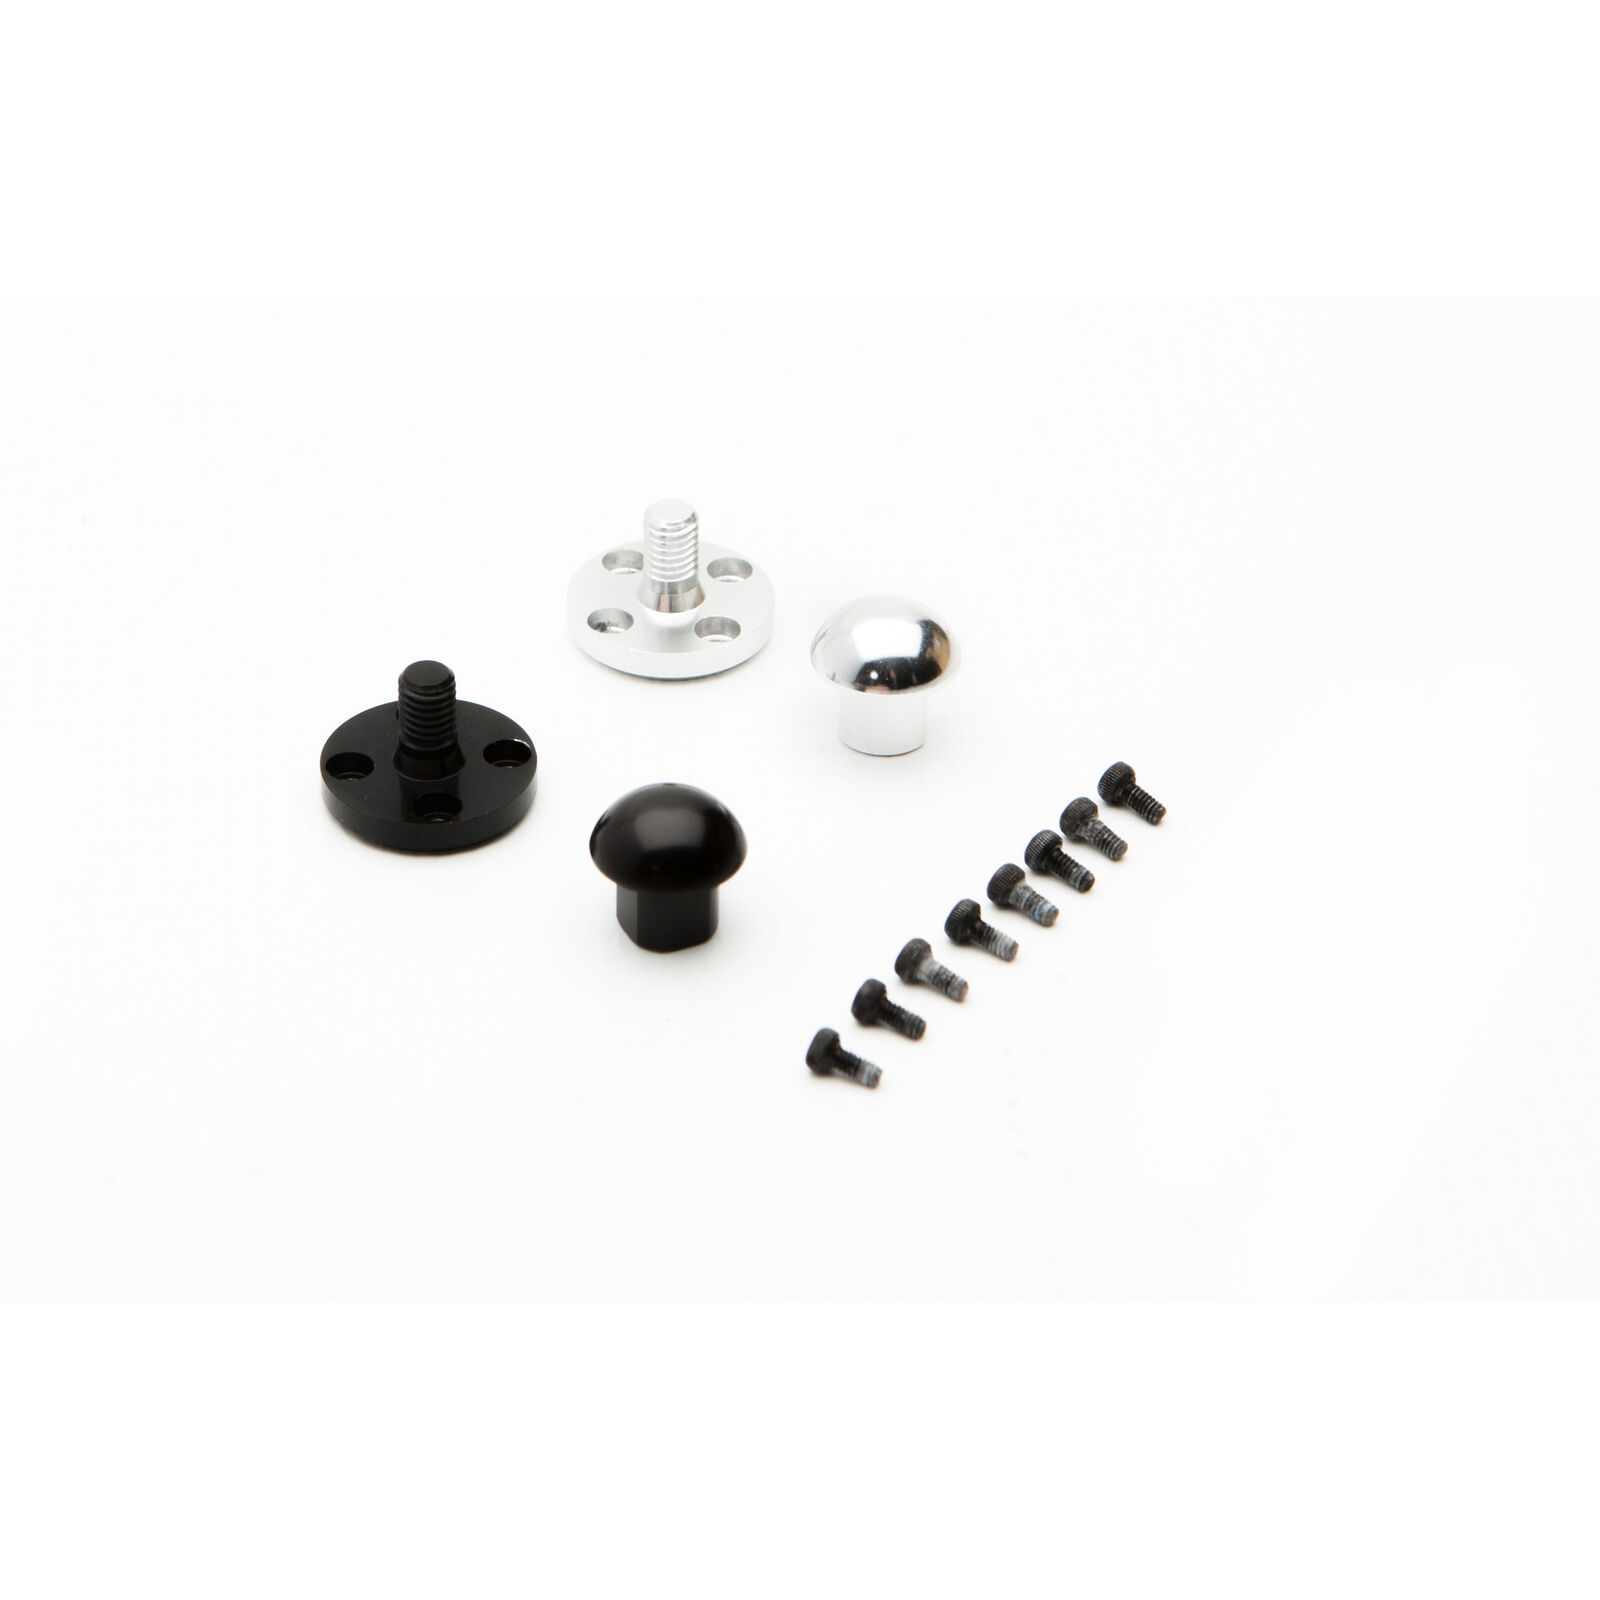 Blade Self Tightening Prop Adapter Set: Mach 25 FPV